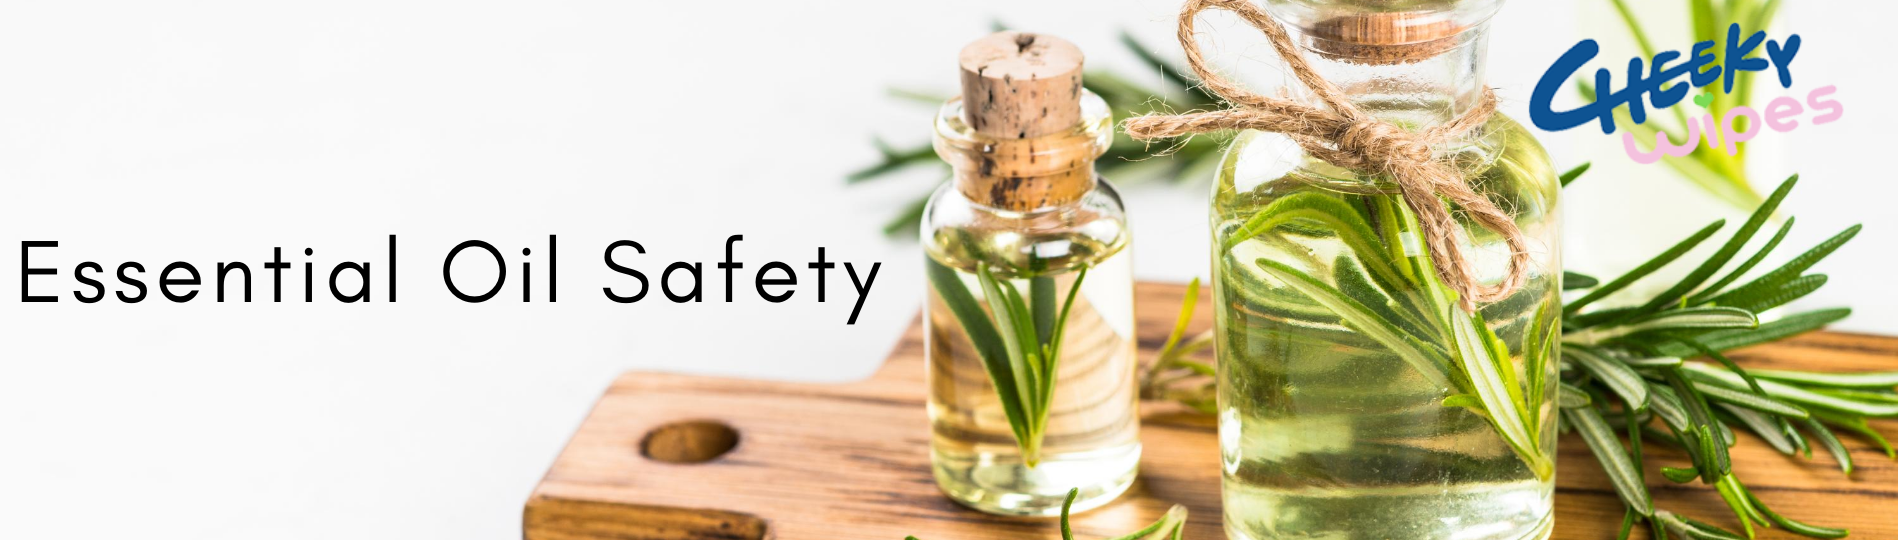 essential-oil-safety-banner.png